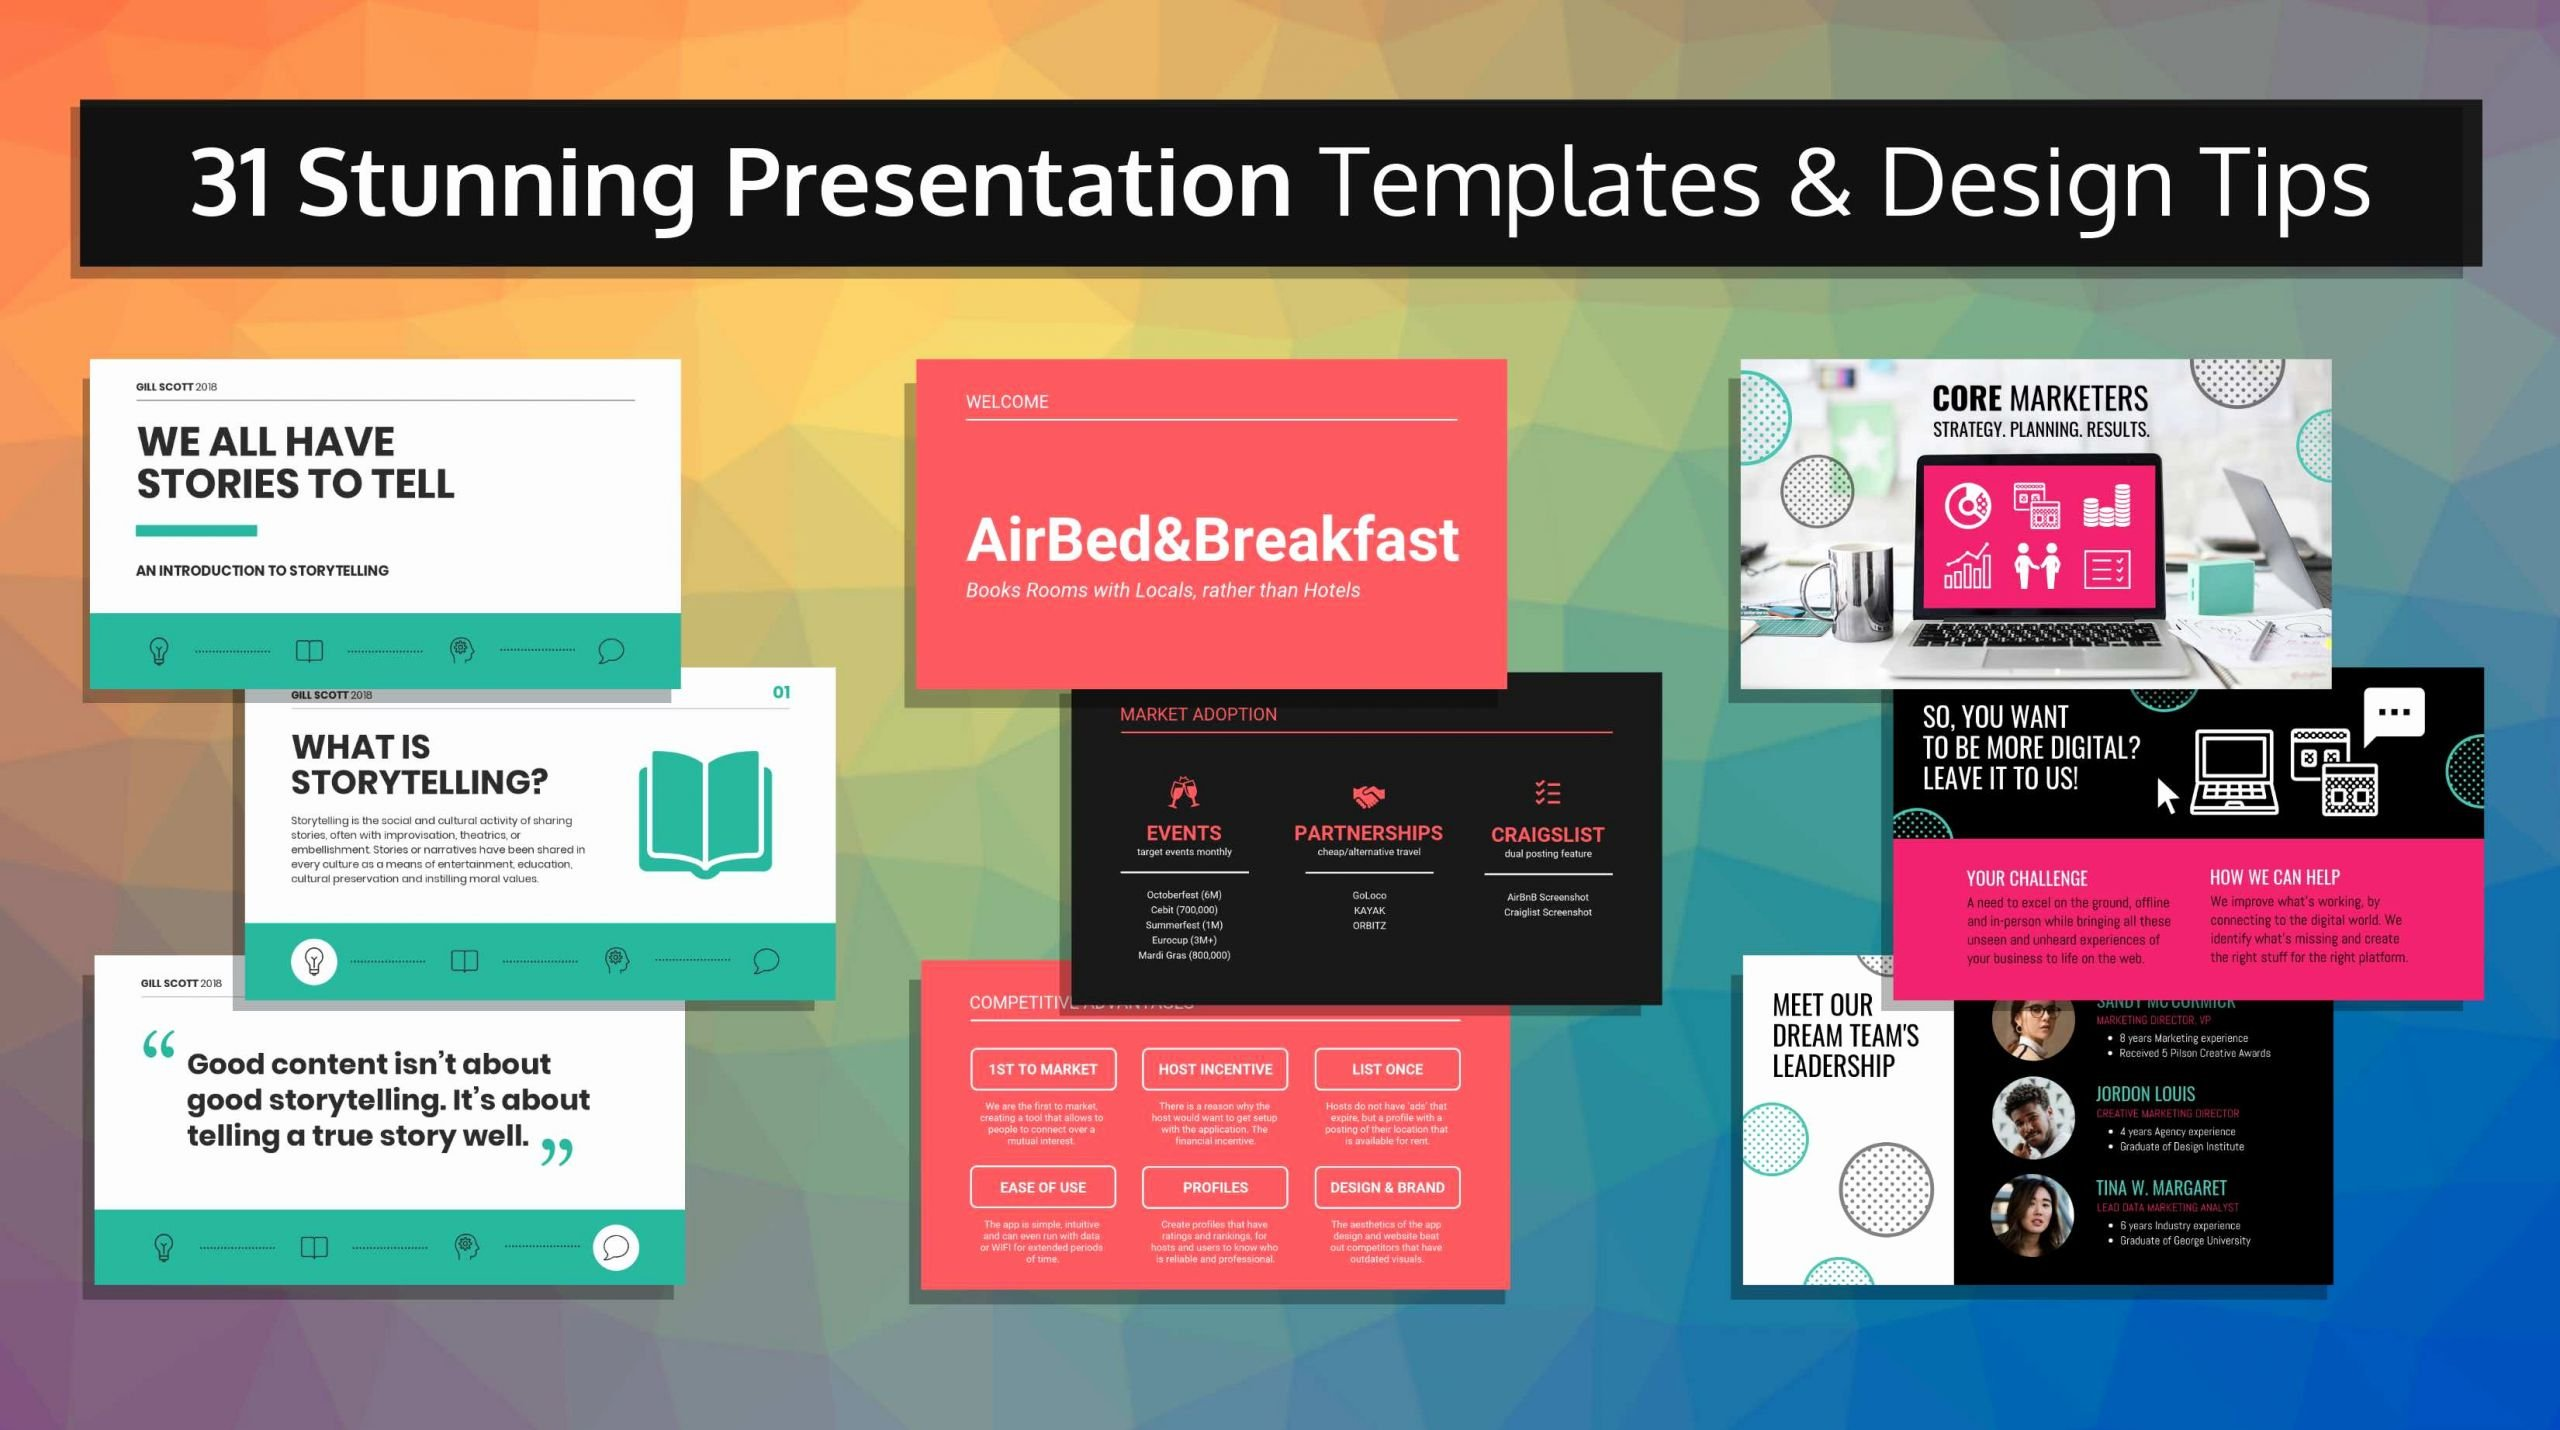 All About Me Powerpoint Template Best Of 31 Stunning Presentation Templates and Design Tips